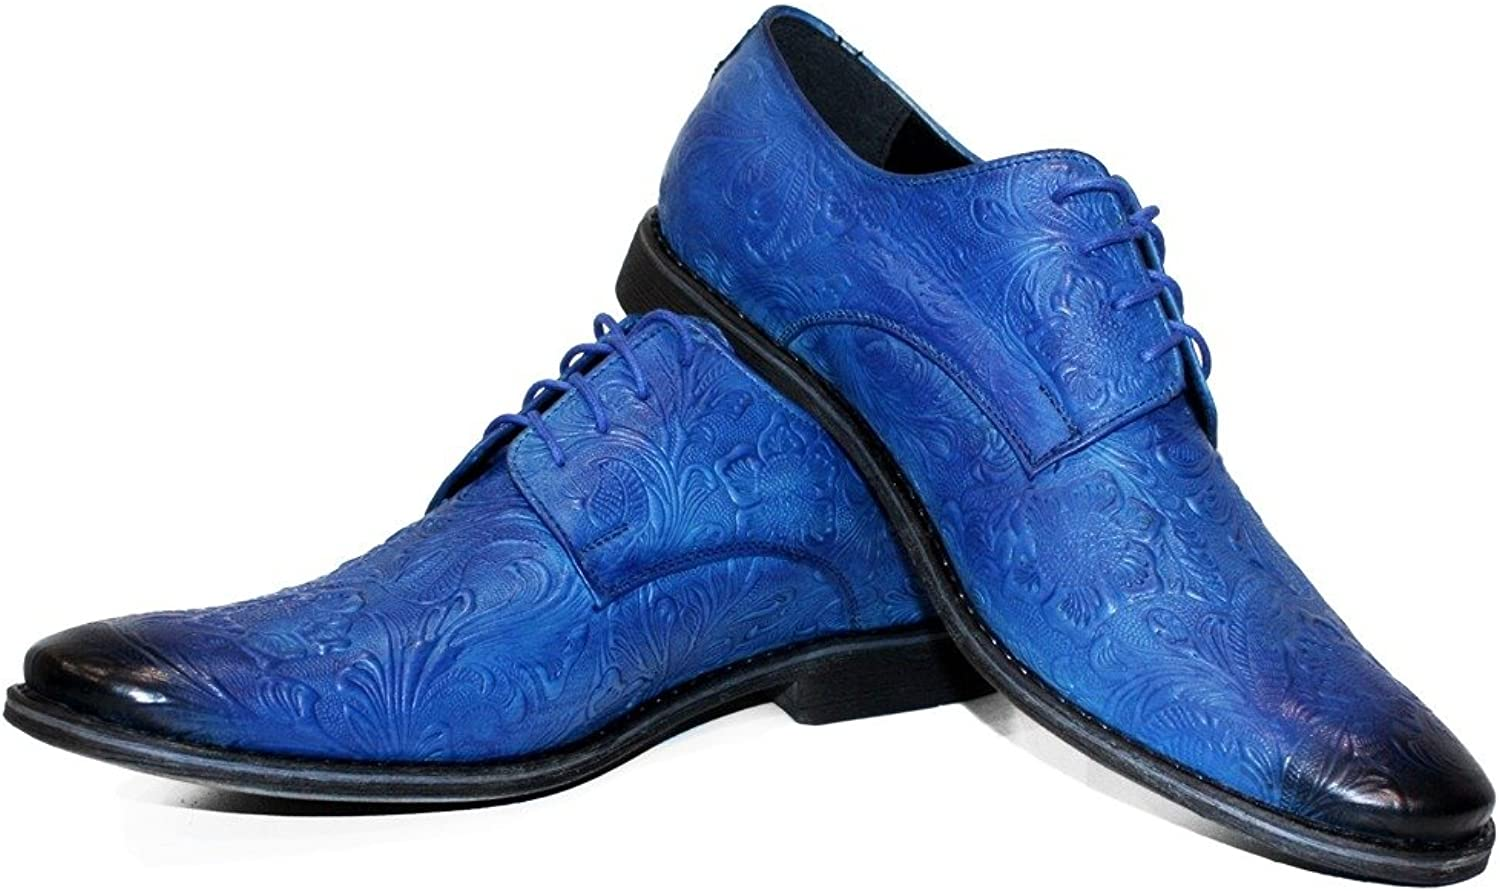 Modello Espressio - Handmade Italian Leather Mens color bluee Oxfords Dress shoes - Cowhide Embossed Leather - Lace-Up